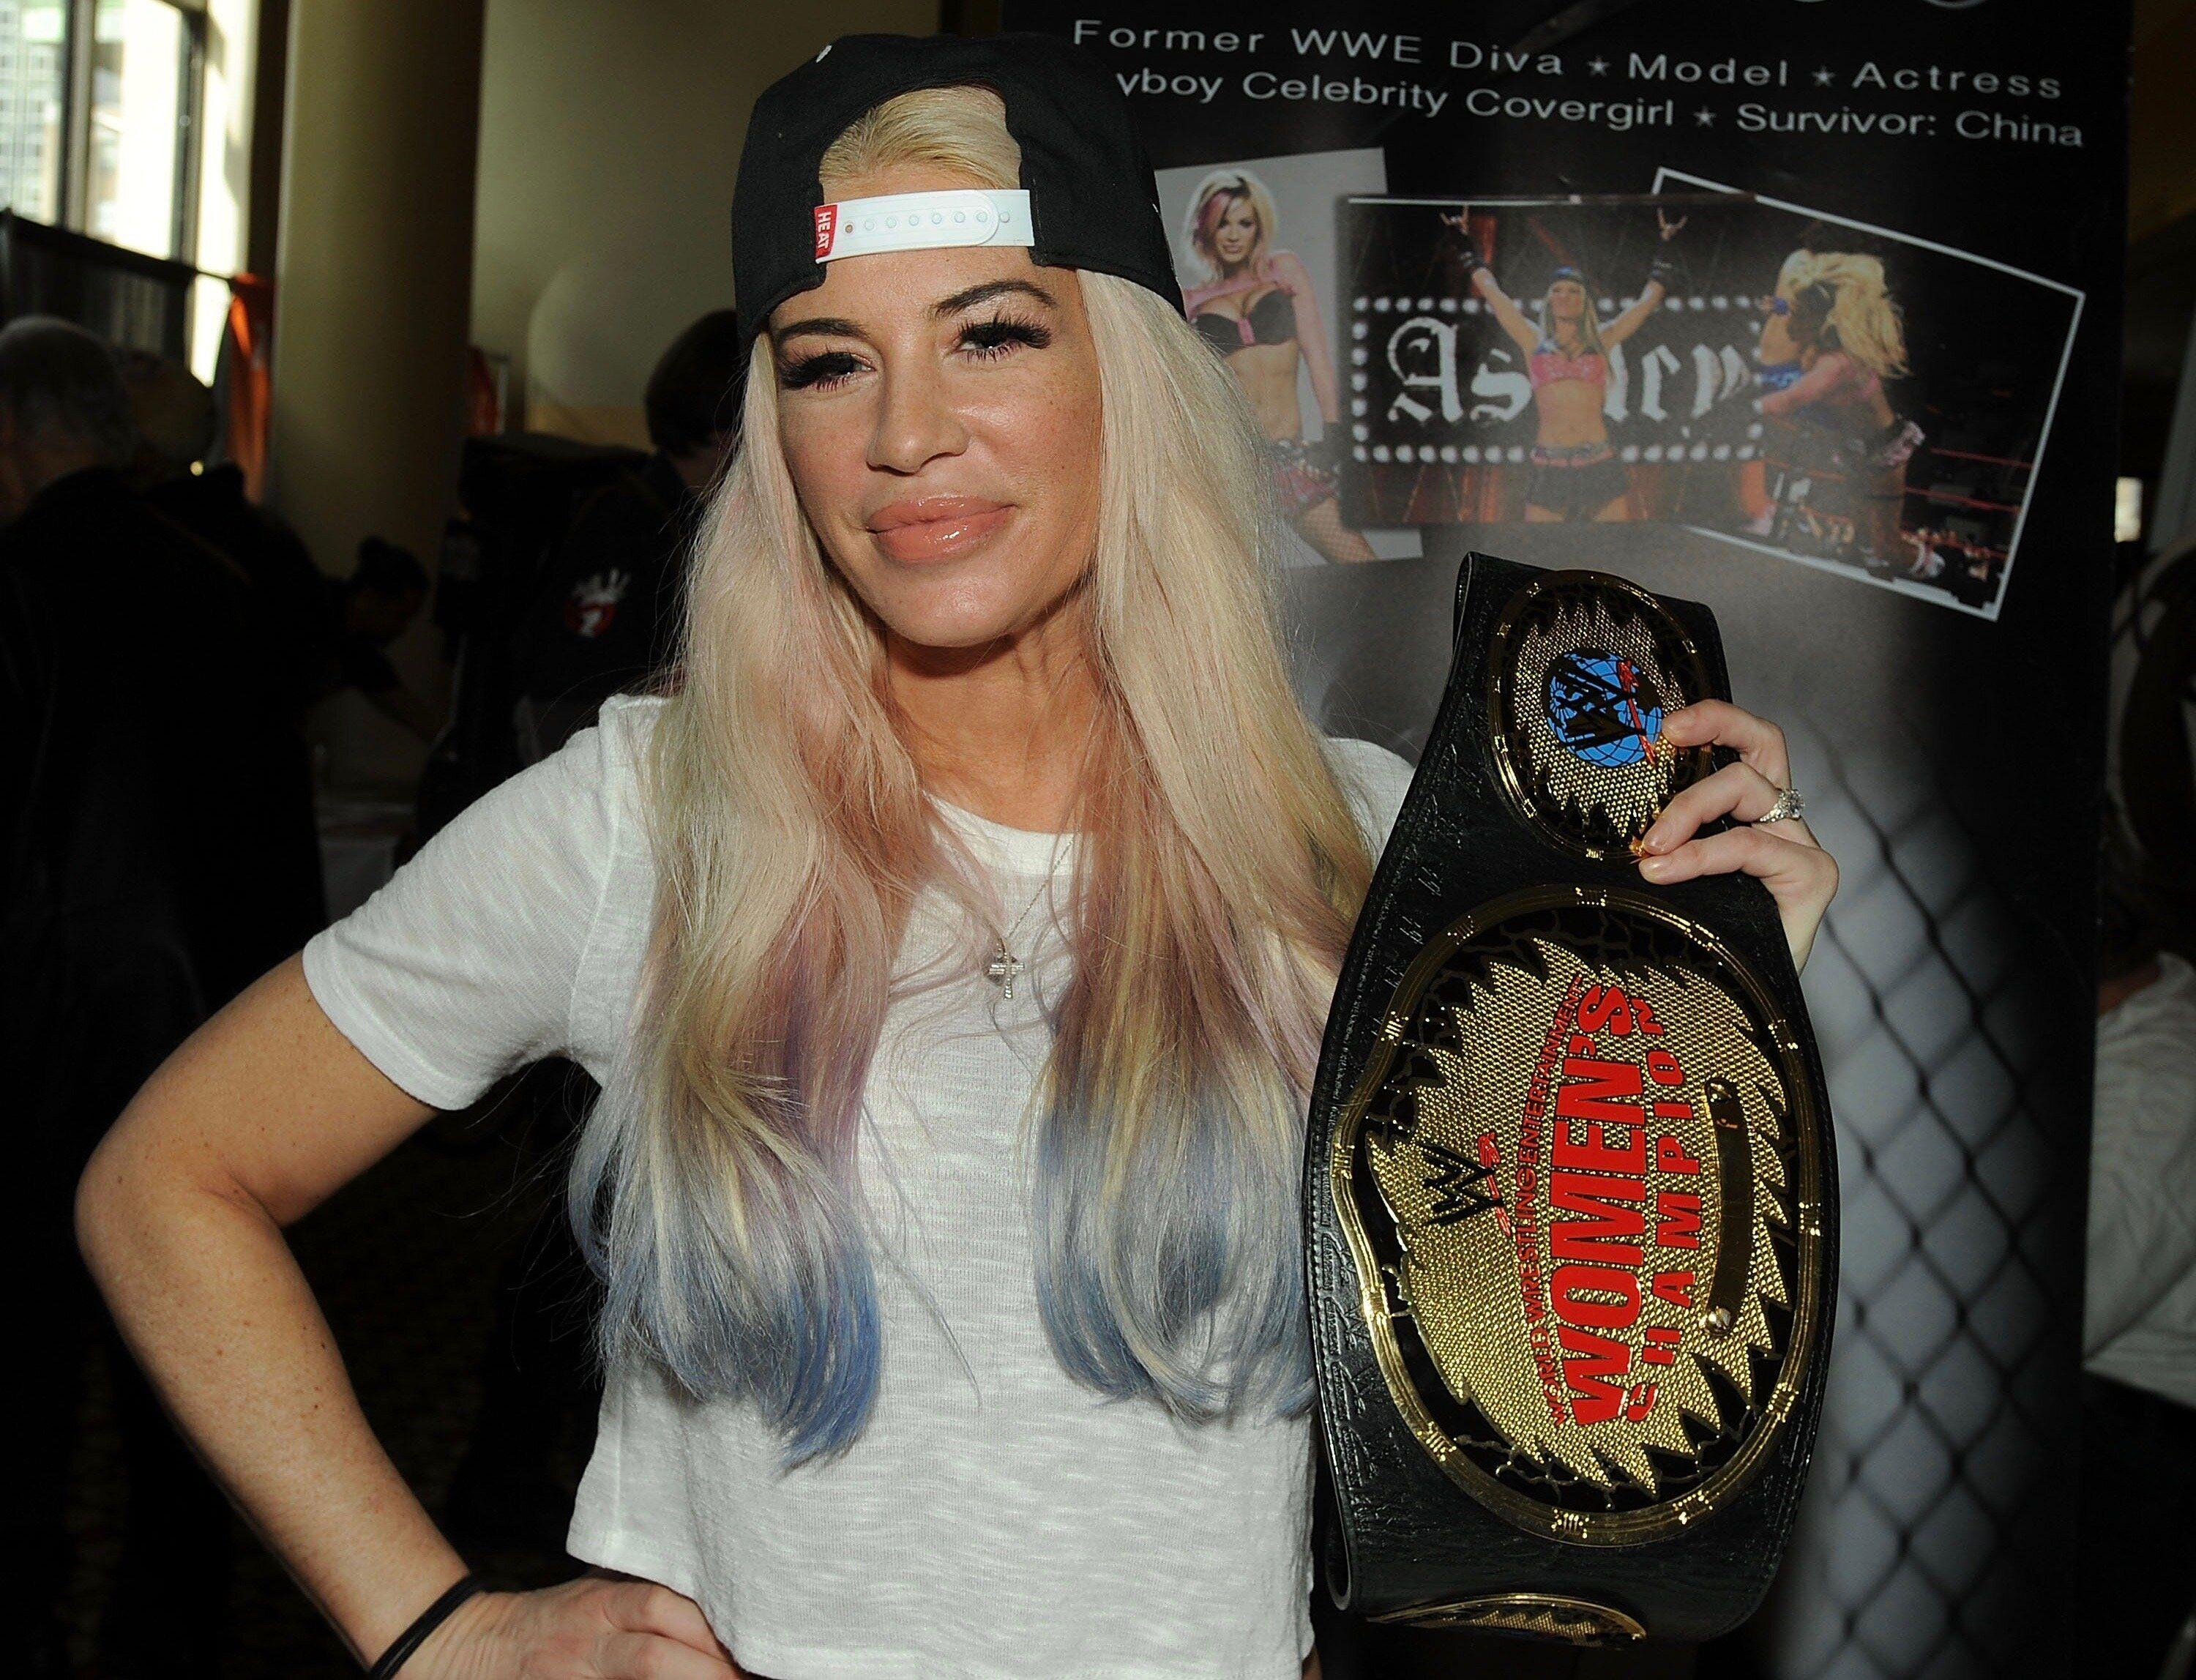 Report: Dead WWE star Ashley Massaro wanted her brain donated for CTE research